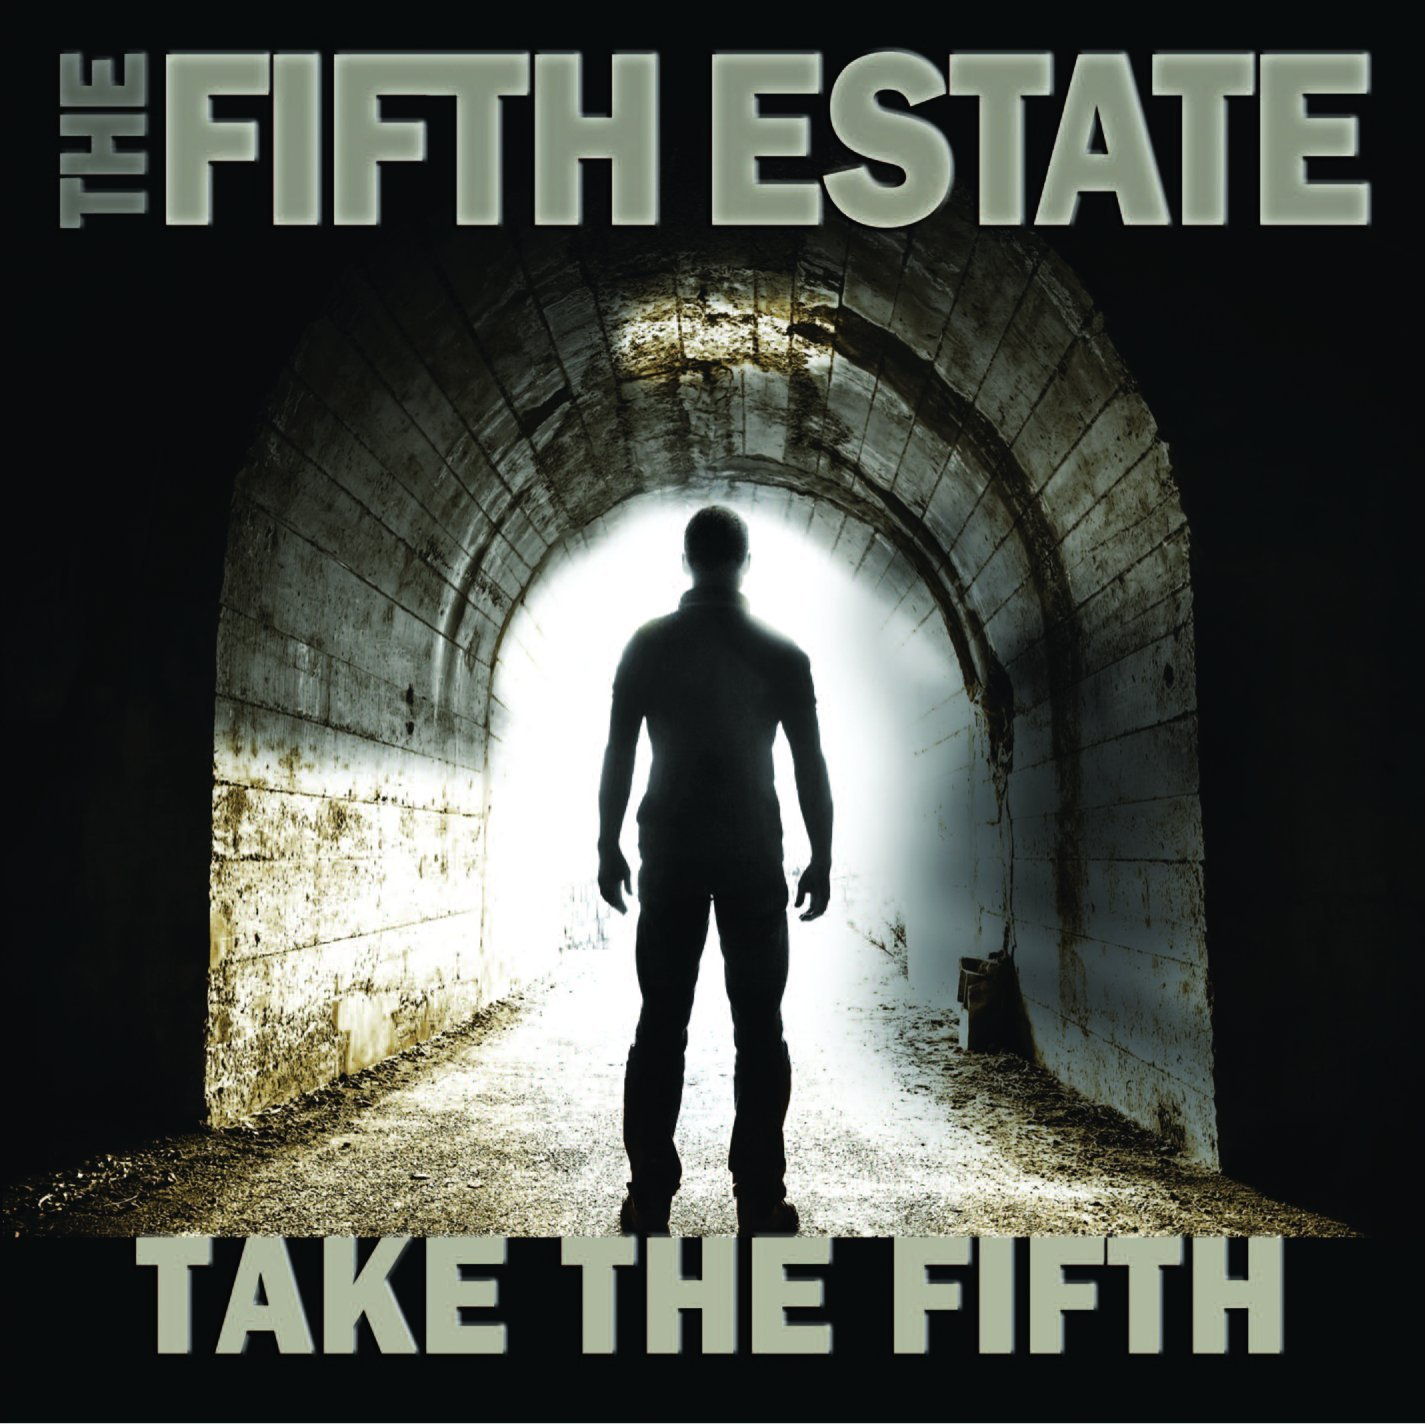 CD : The Fifth Estate - Take The Fifth (CD)